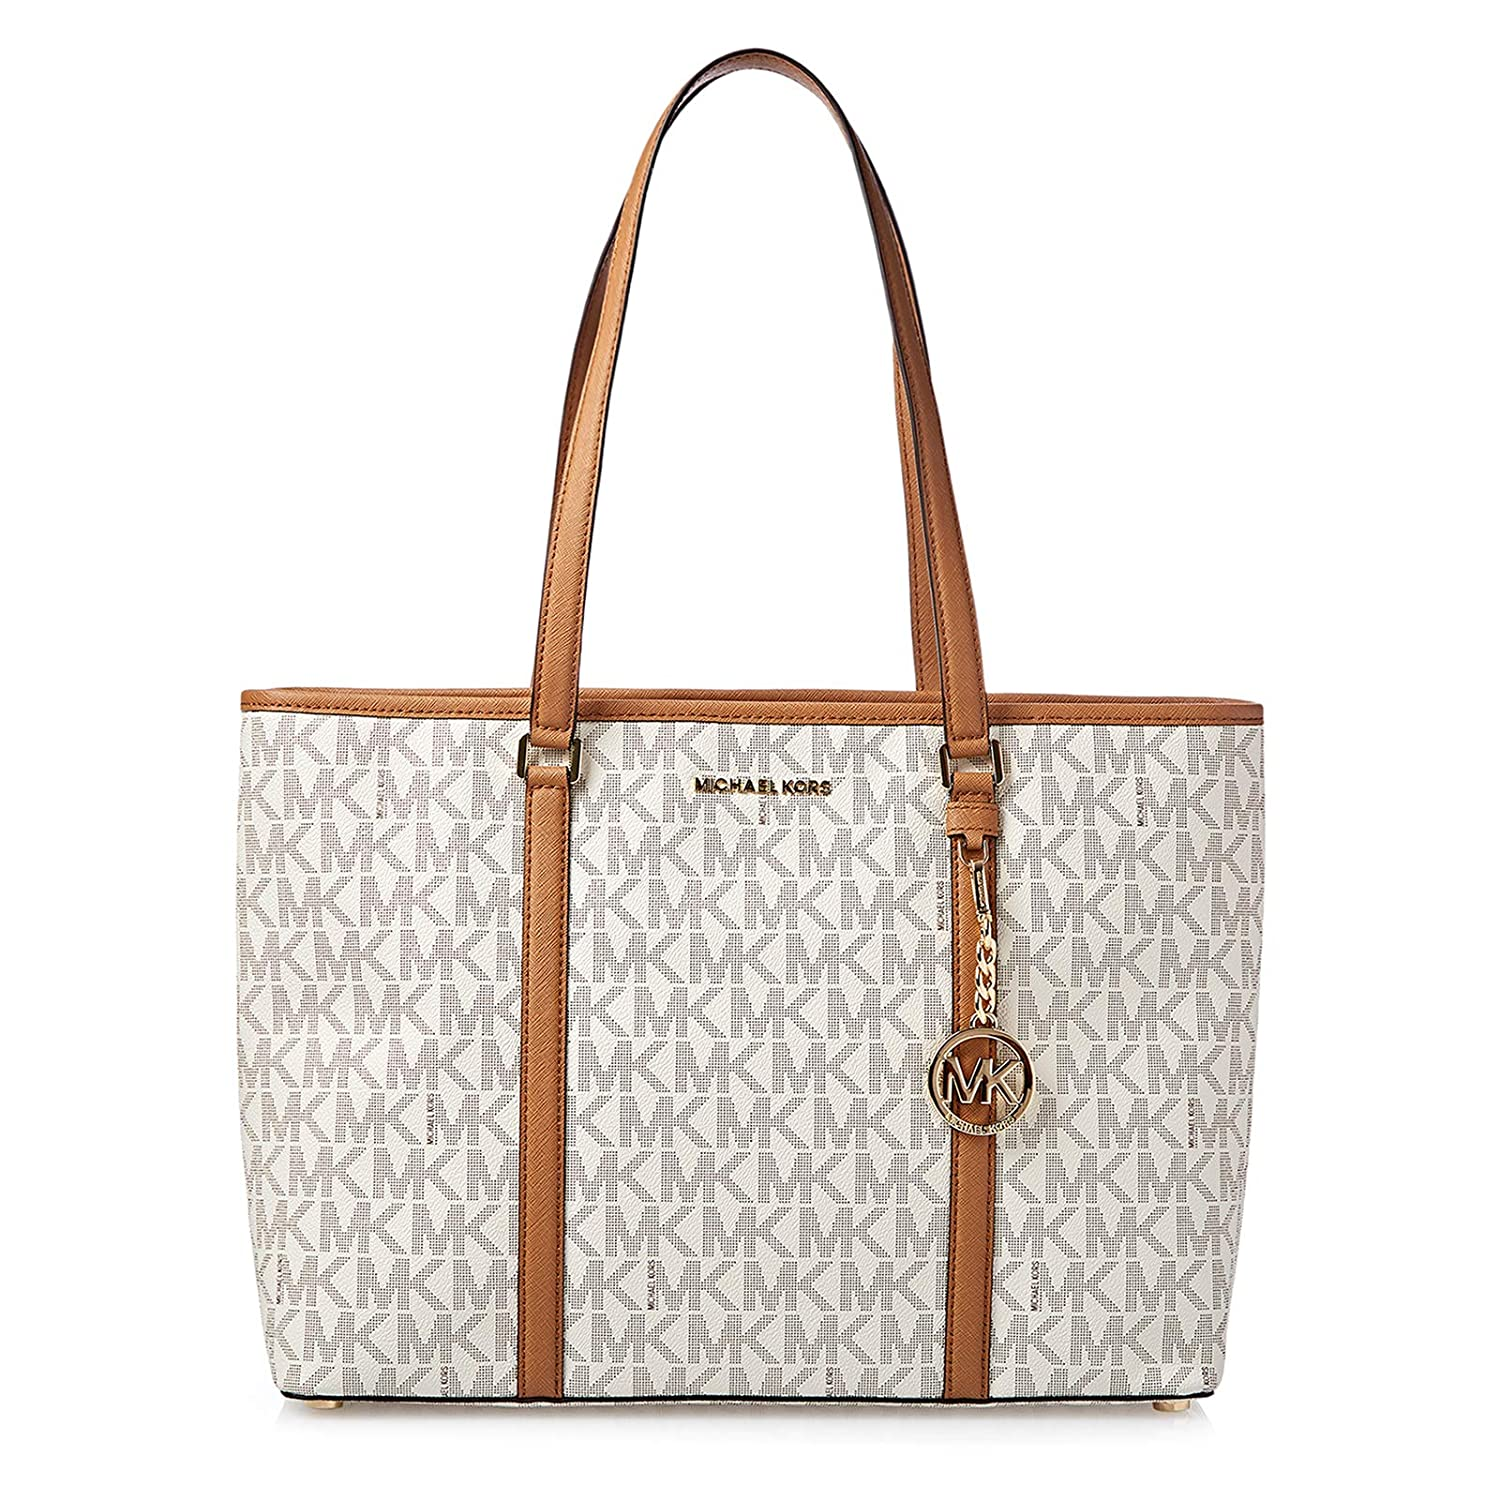 2f601ffd6da0 Michael Kors Large Sady Carryall Shoulder bag (Vanilla Pvc): Handbags:  Amazon.com